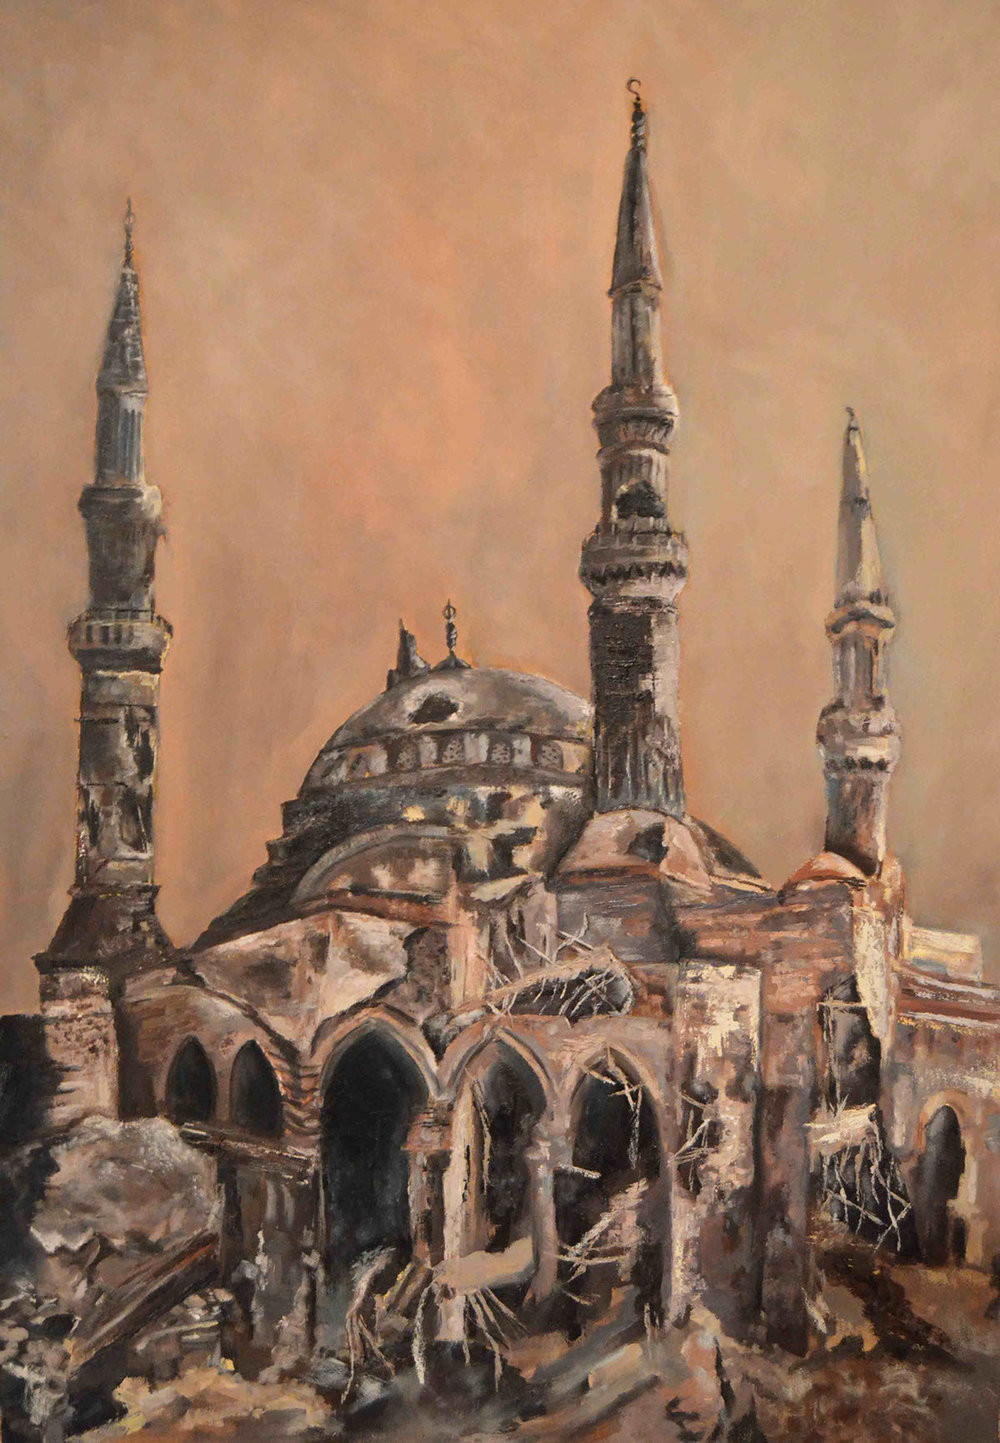 Apocalyptic City series The Blue Mosque, 2017